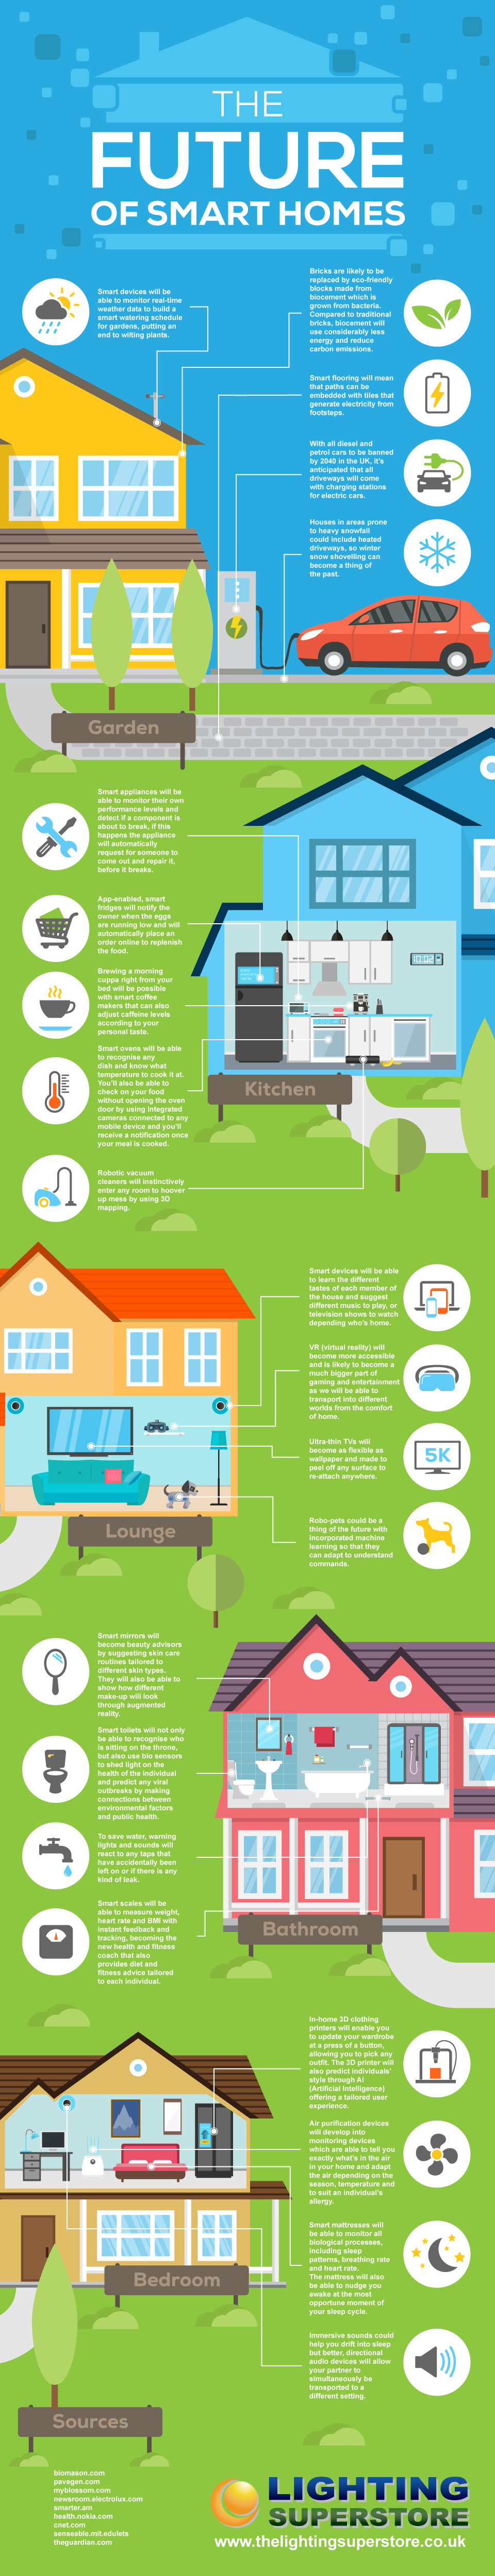 The future of smart homes #infographic